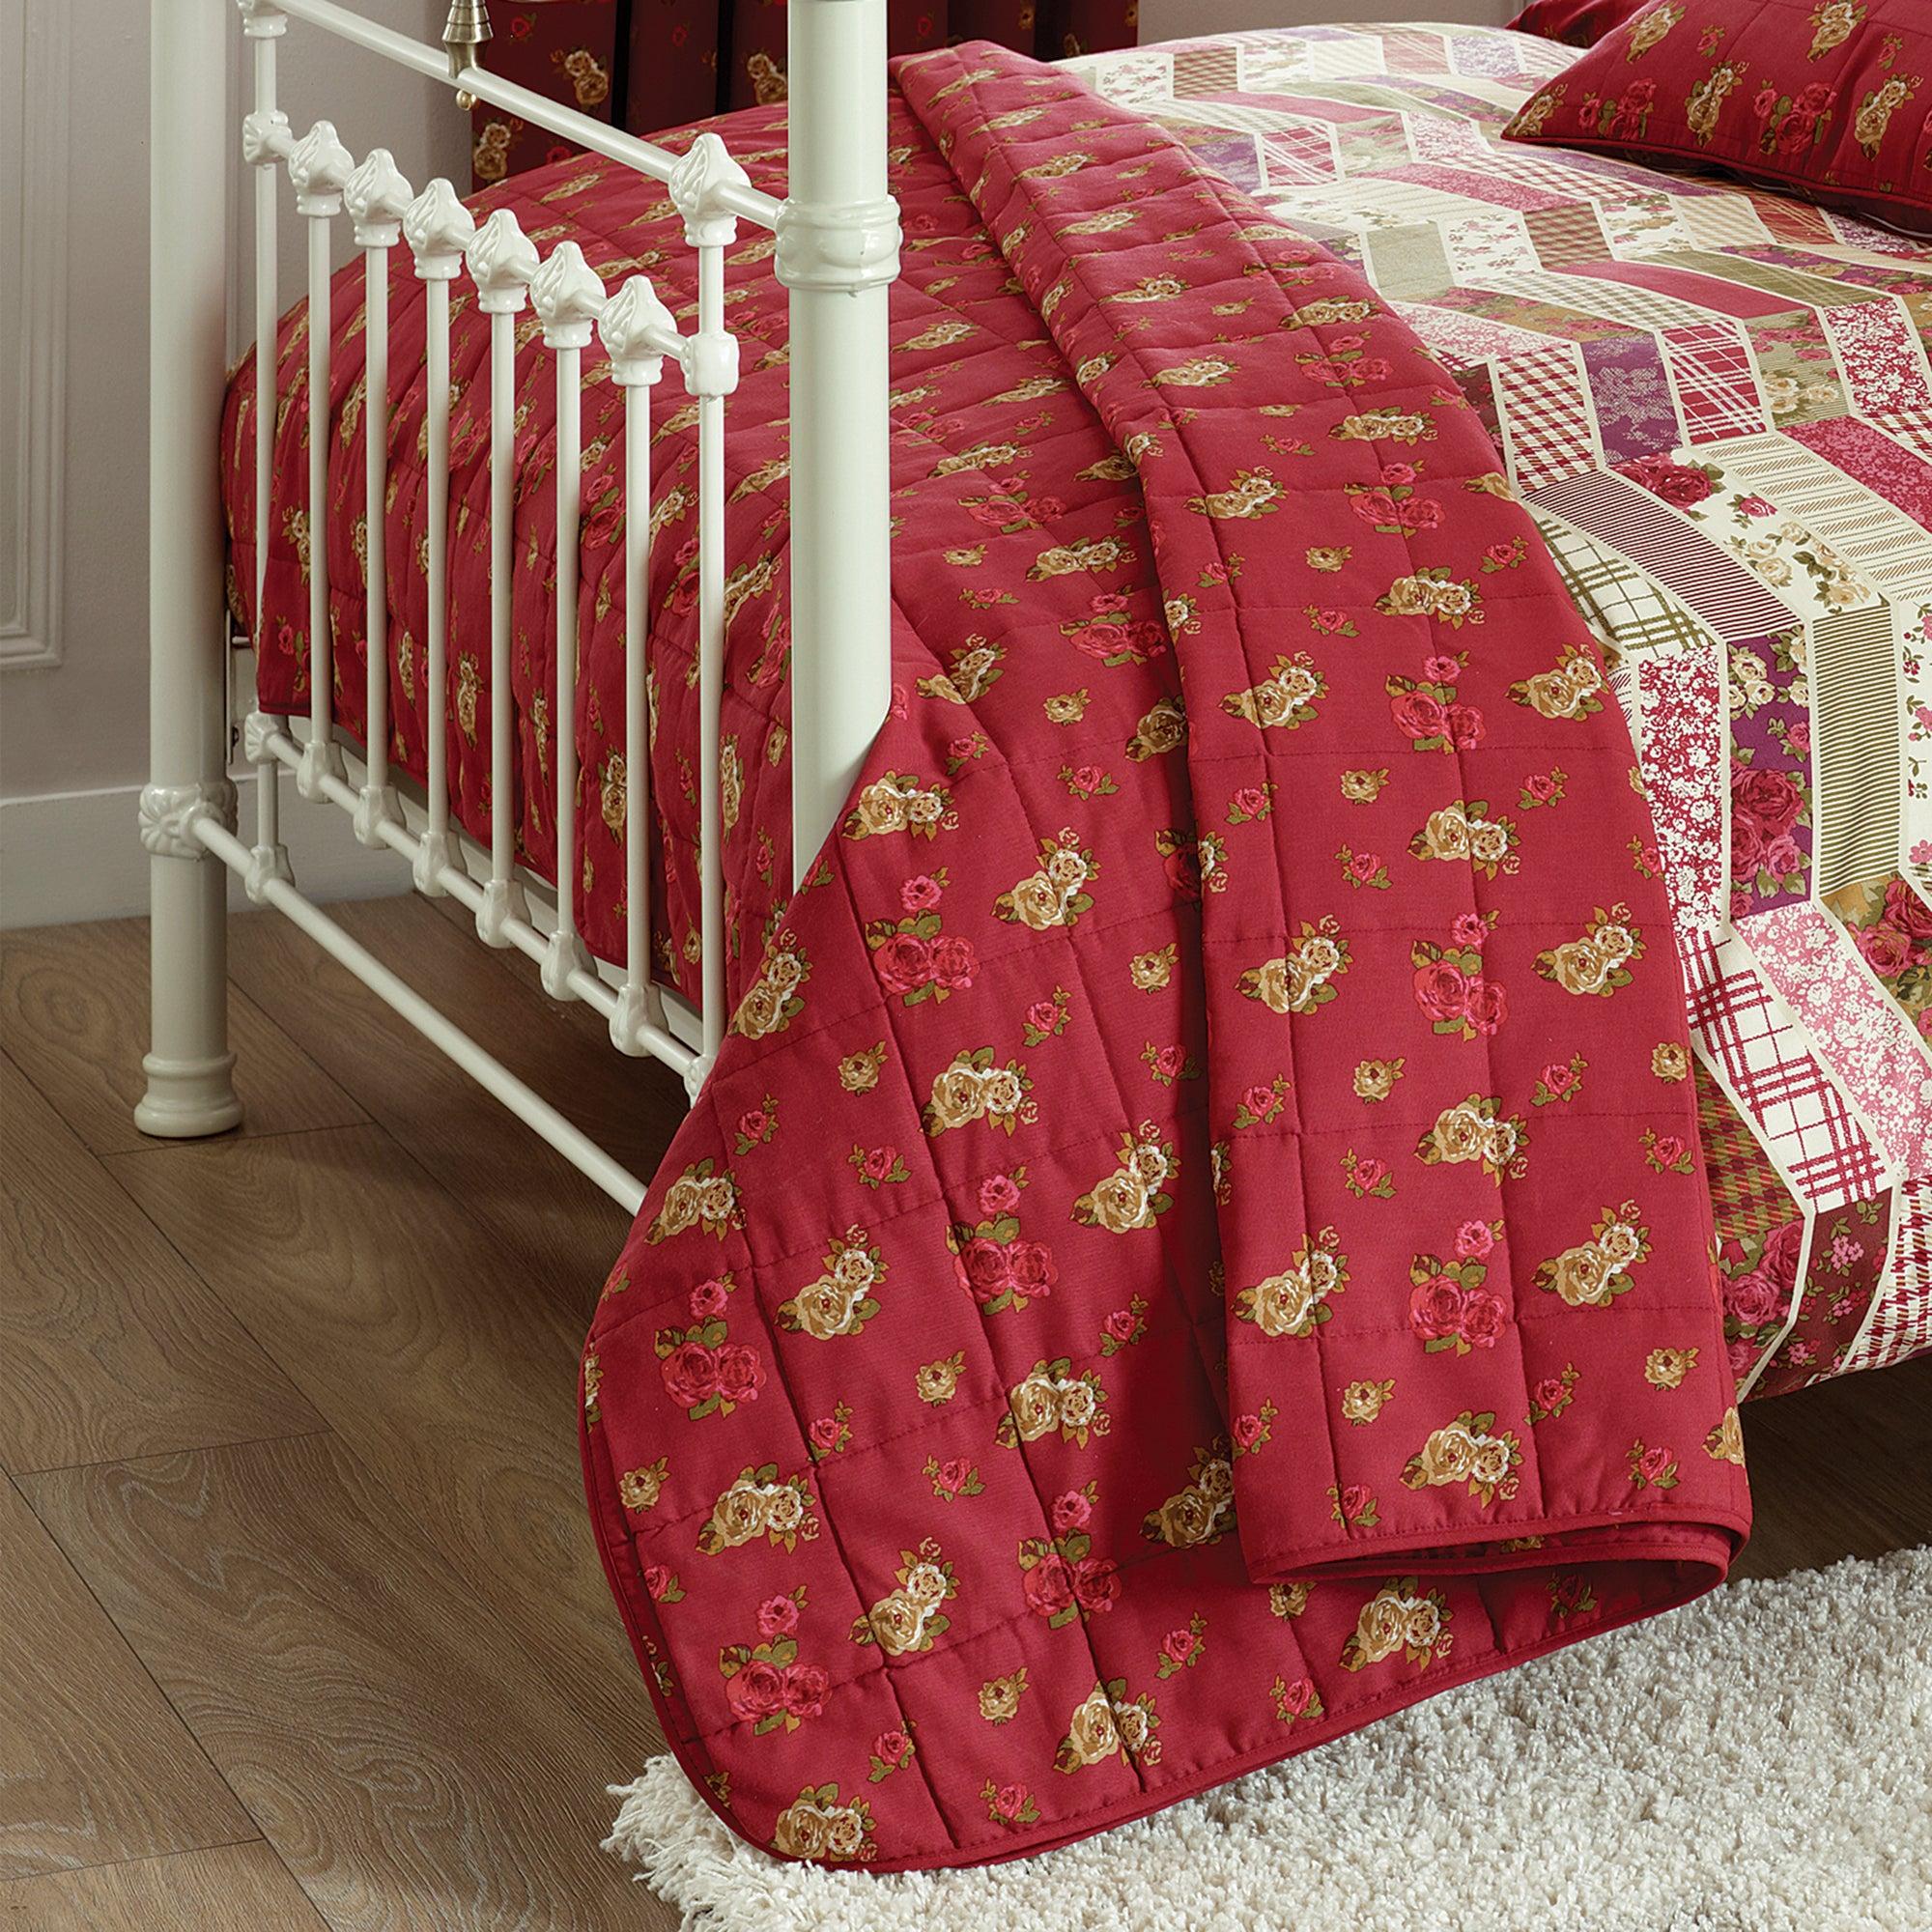 Red Herringbone Patchwork Collection Bedspread